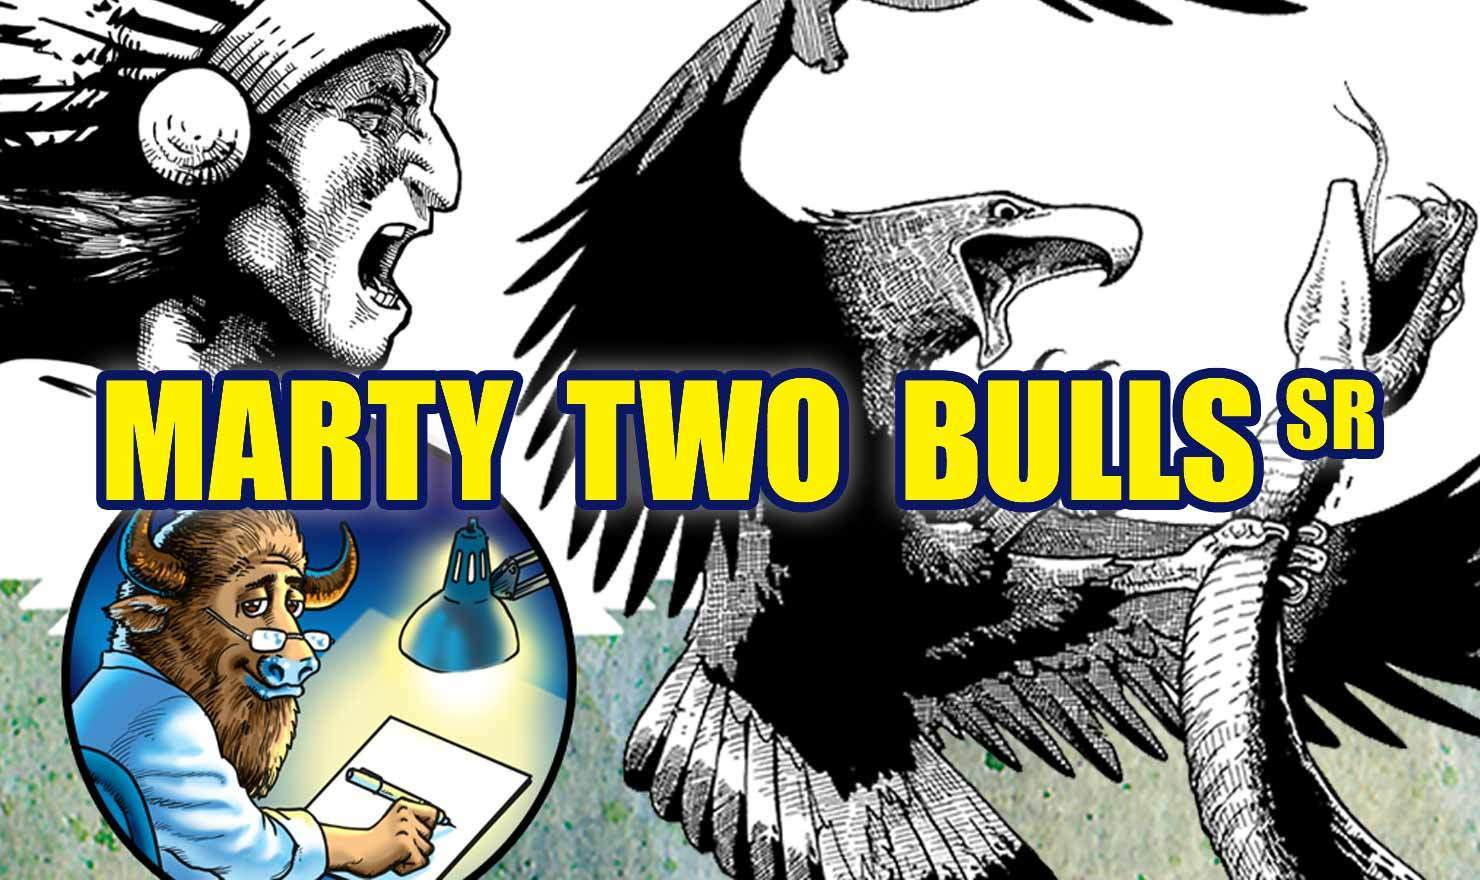 New Comic Alert: 'M2Bulls' By Marty Two Bulls Sr.